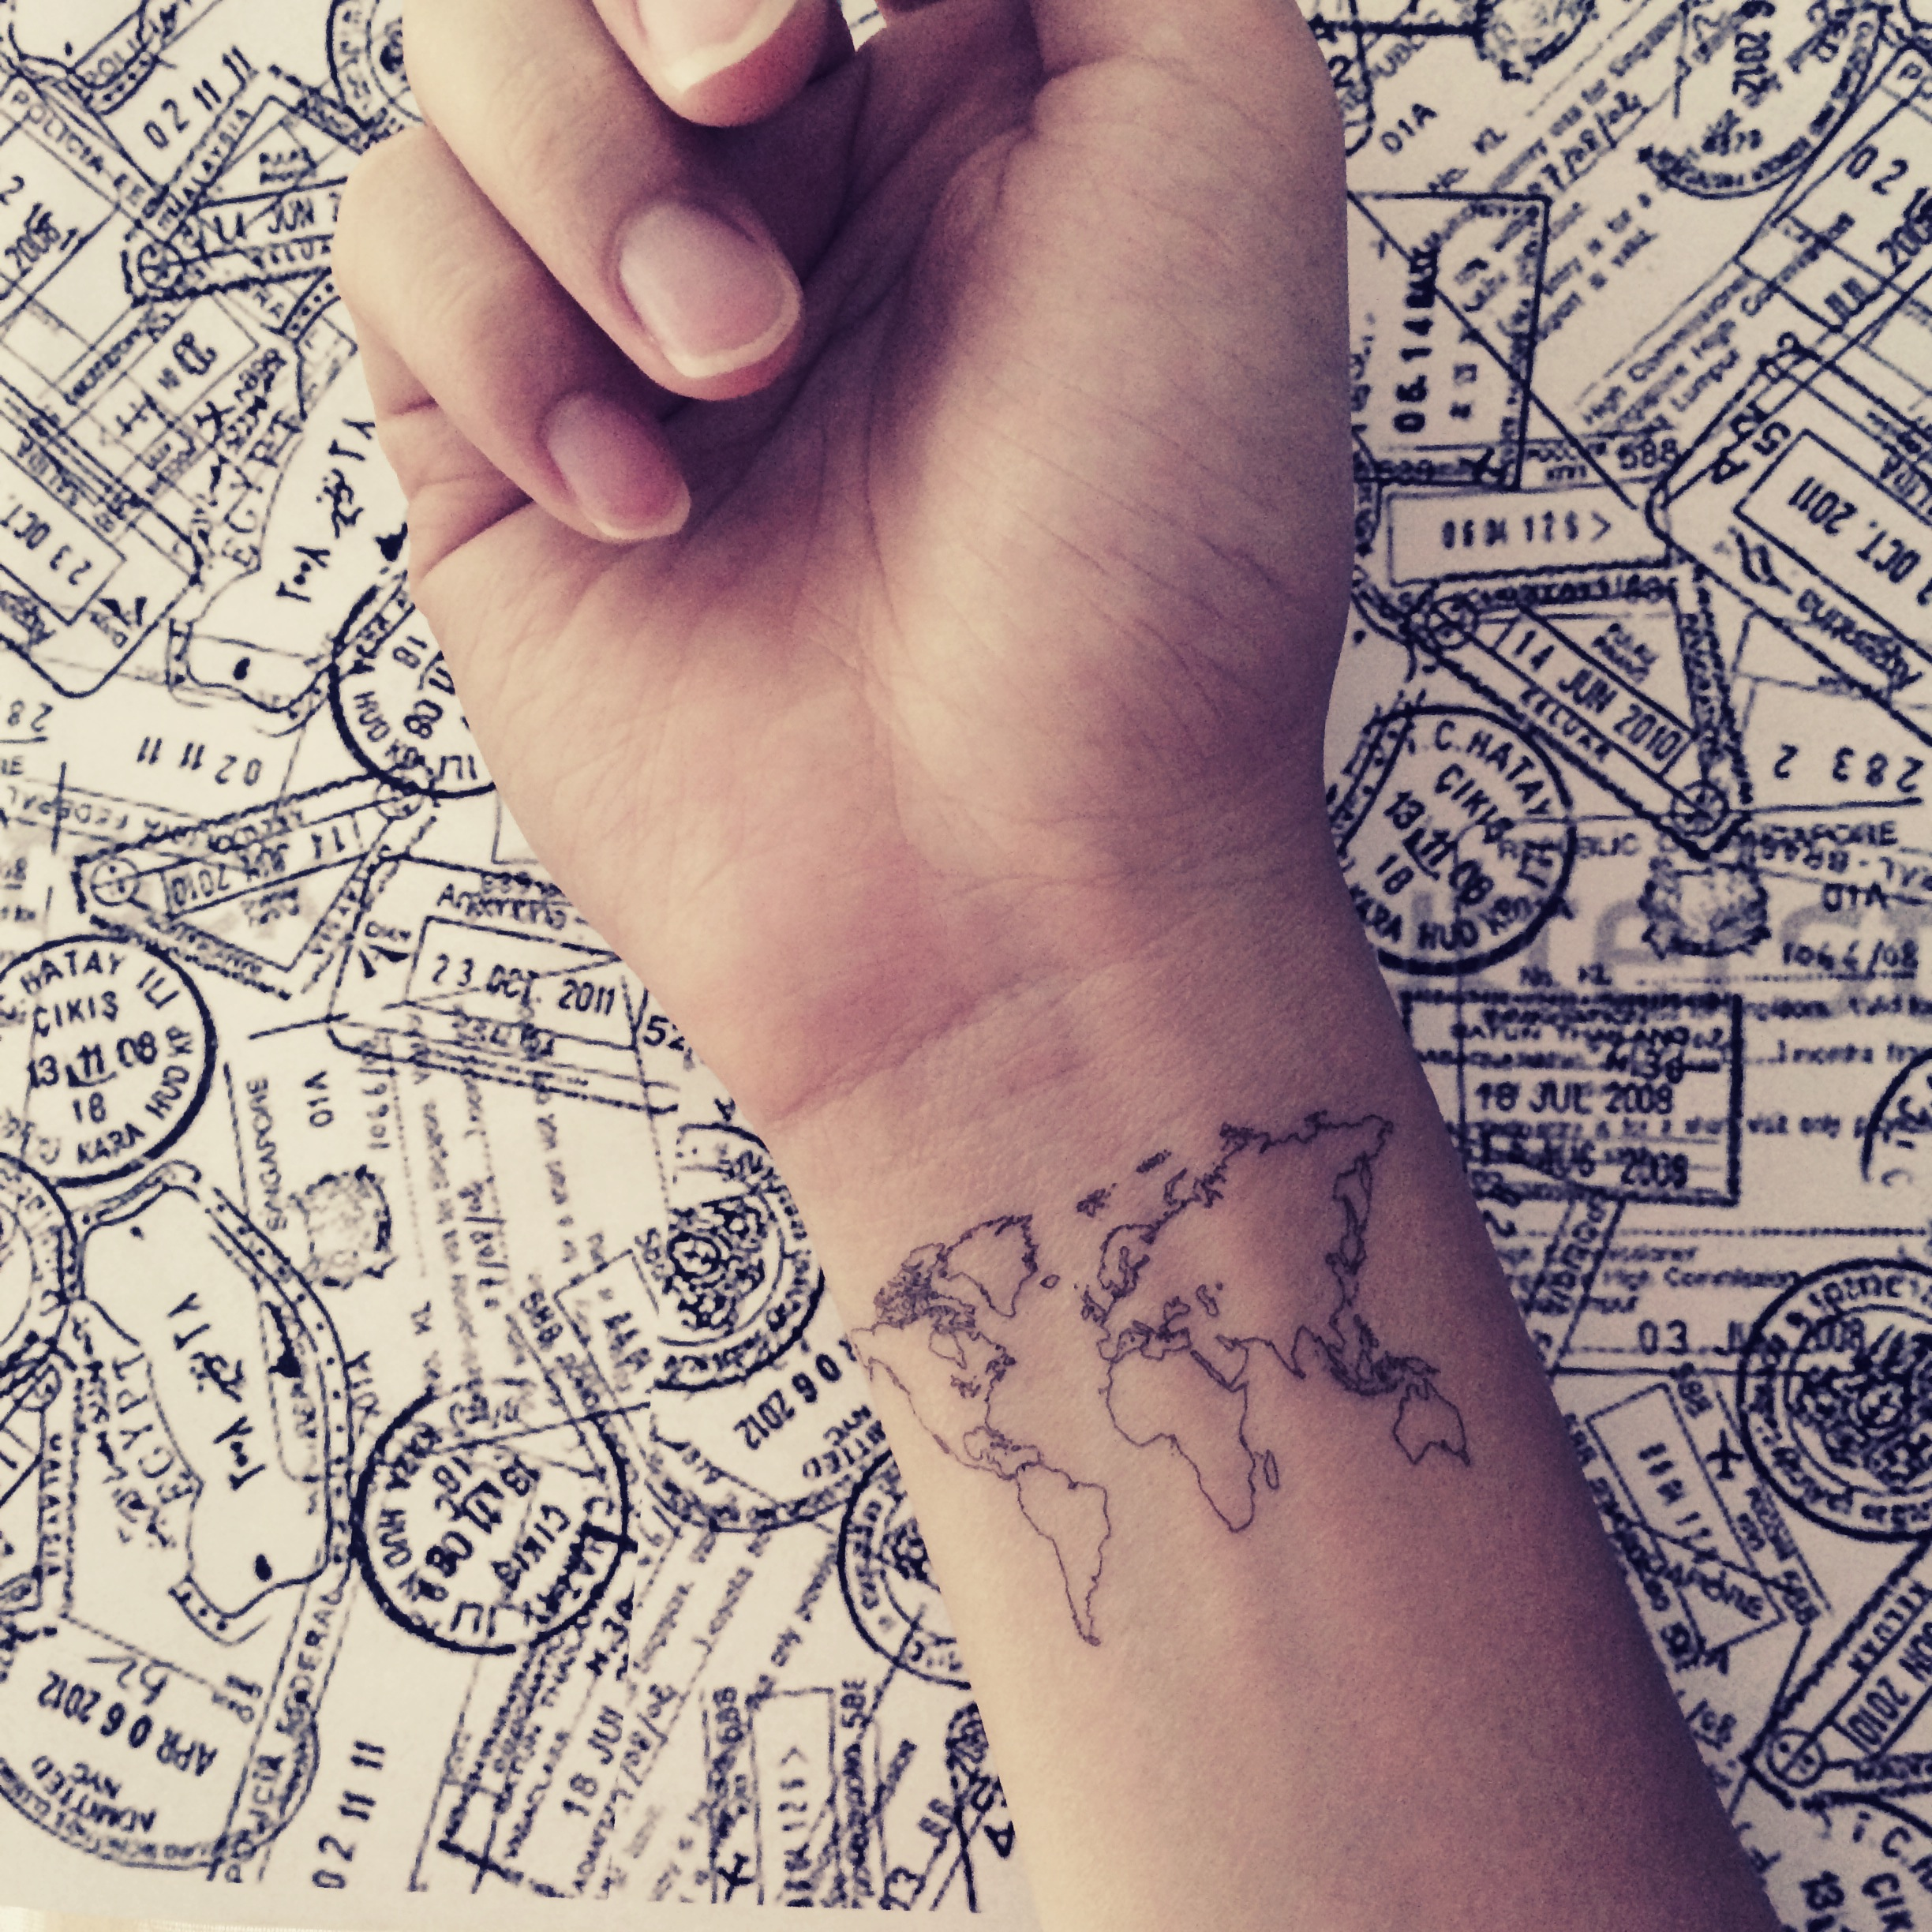 2pcs world map love travel wrist tattoo inknart temporary tattoo 2pcs world map love travel wrist tattoo inknart temporary tattoo wrist quote tattoo body gumiabroncs Images